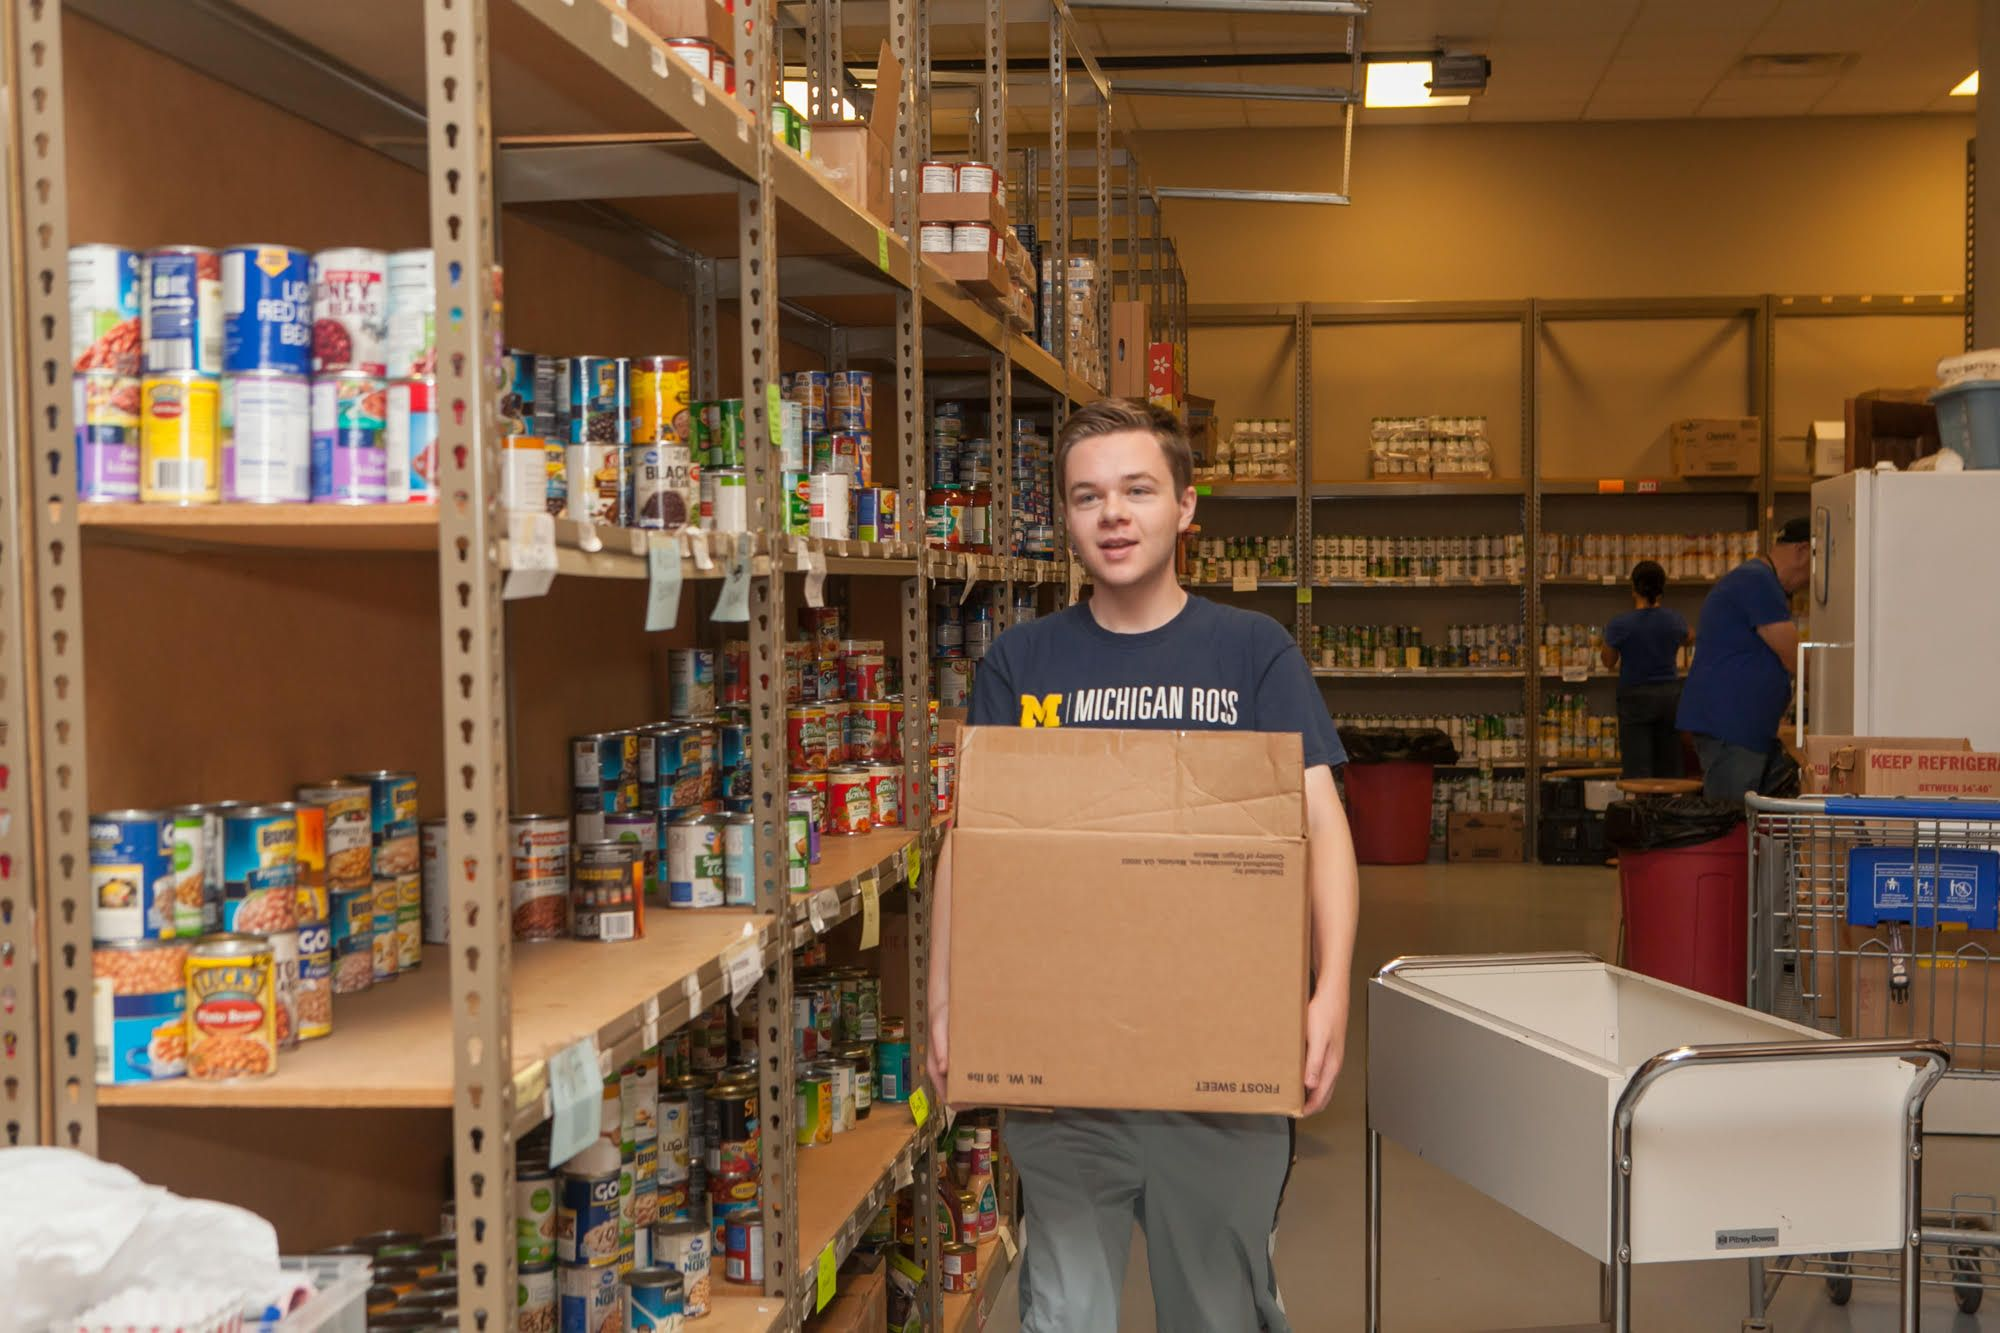 Griffin organizing food pantry in Michigan